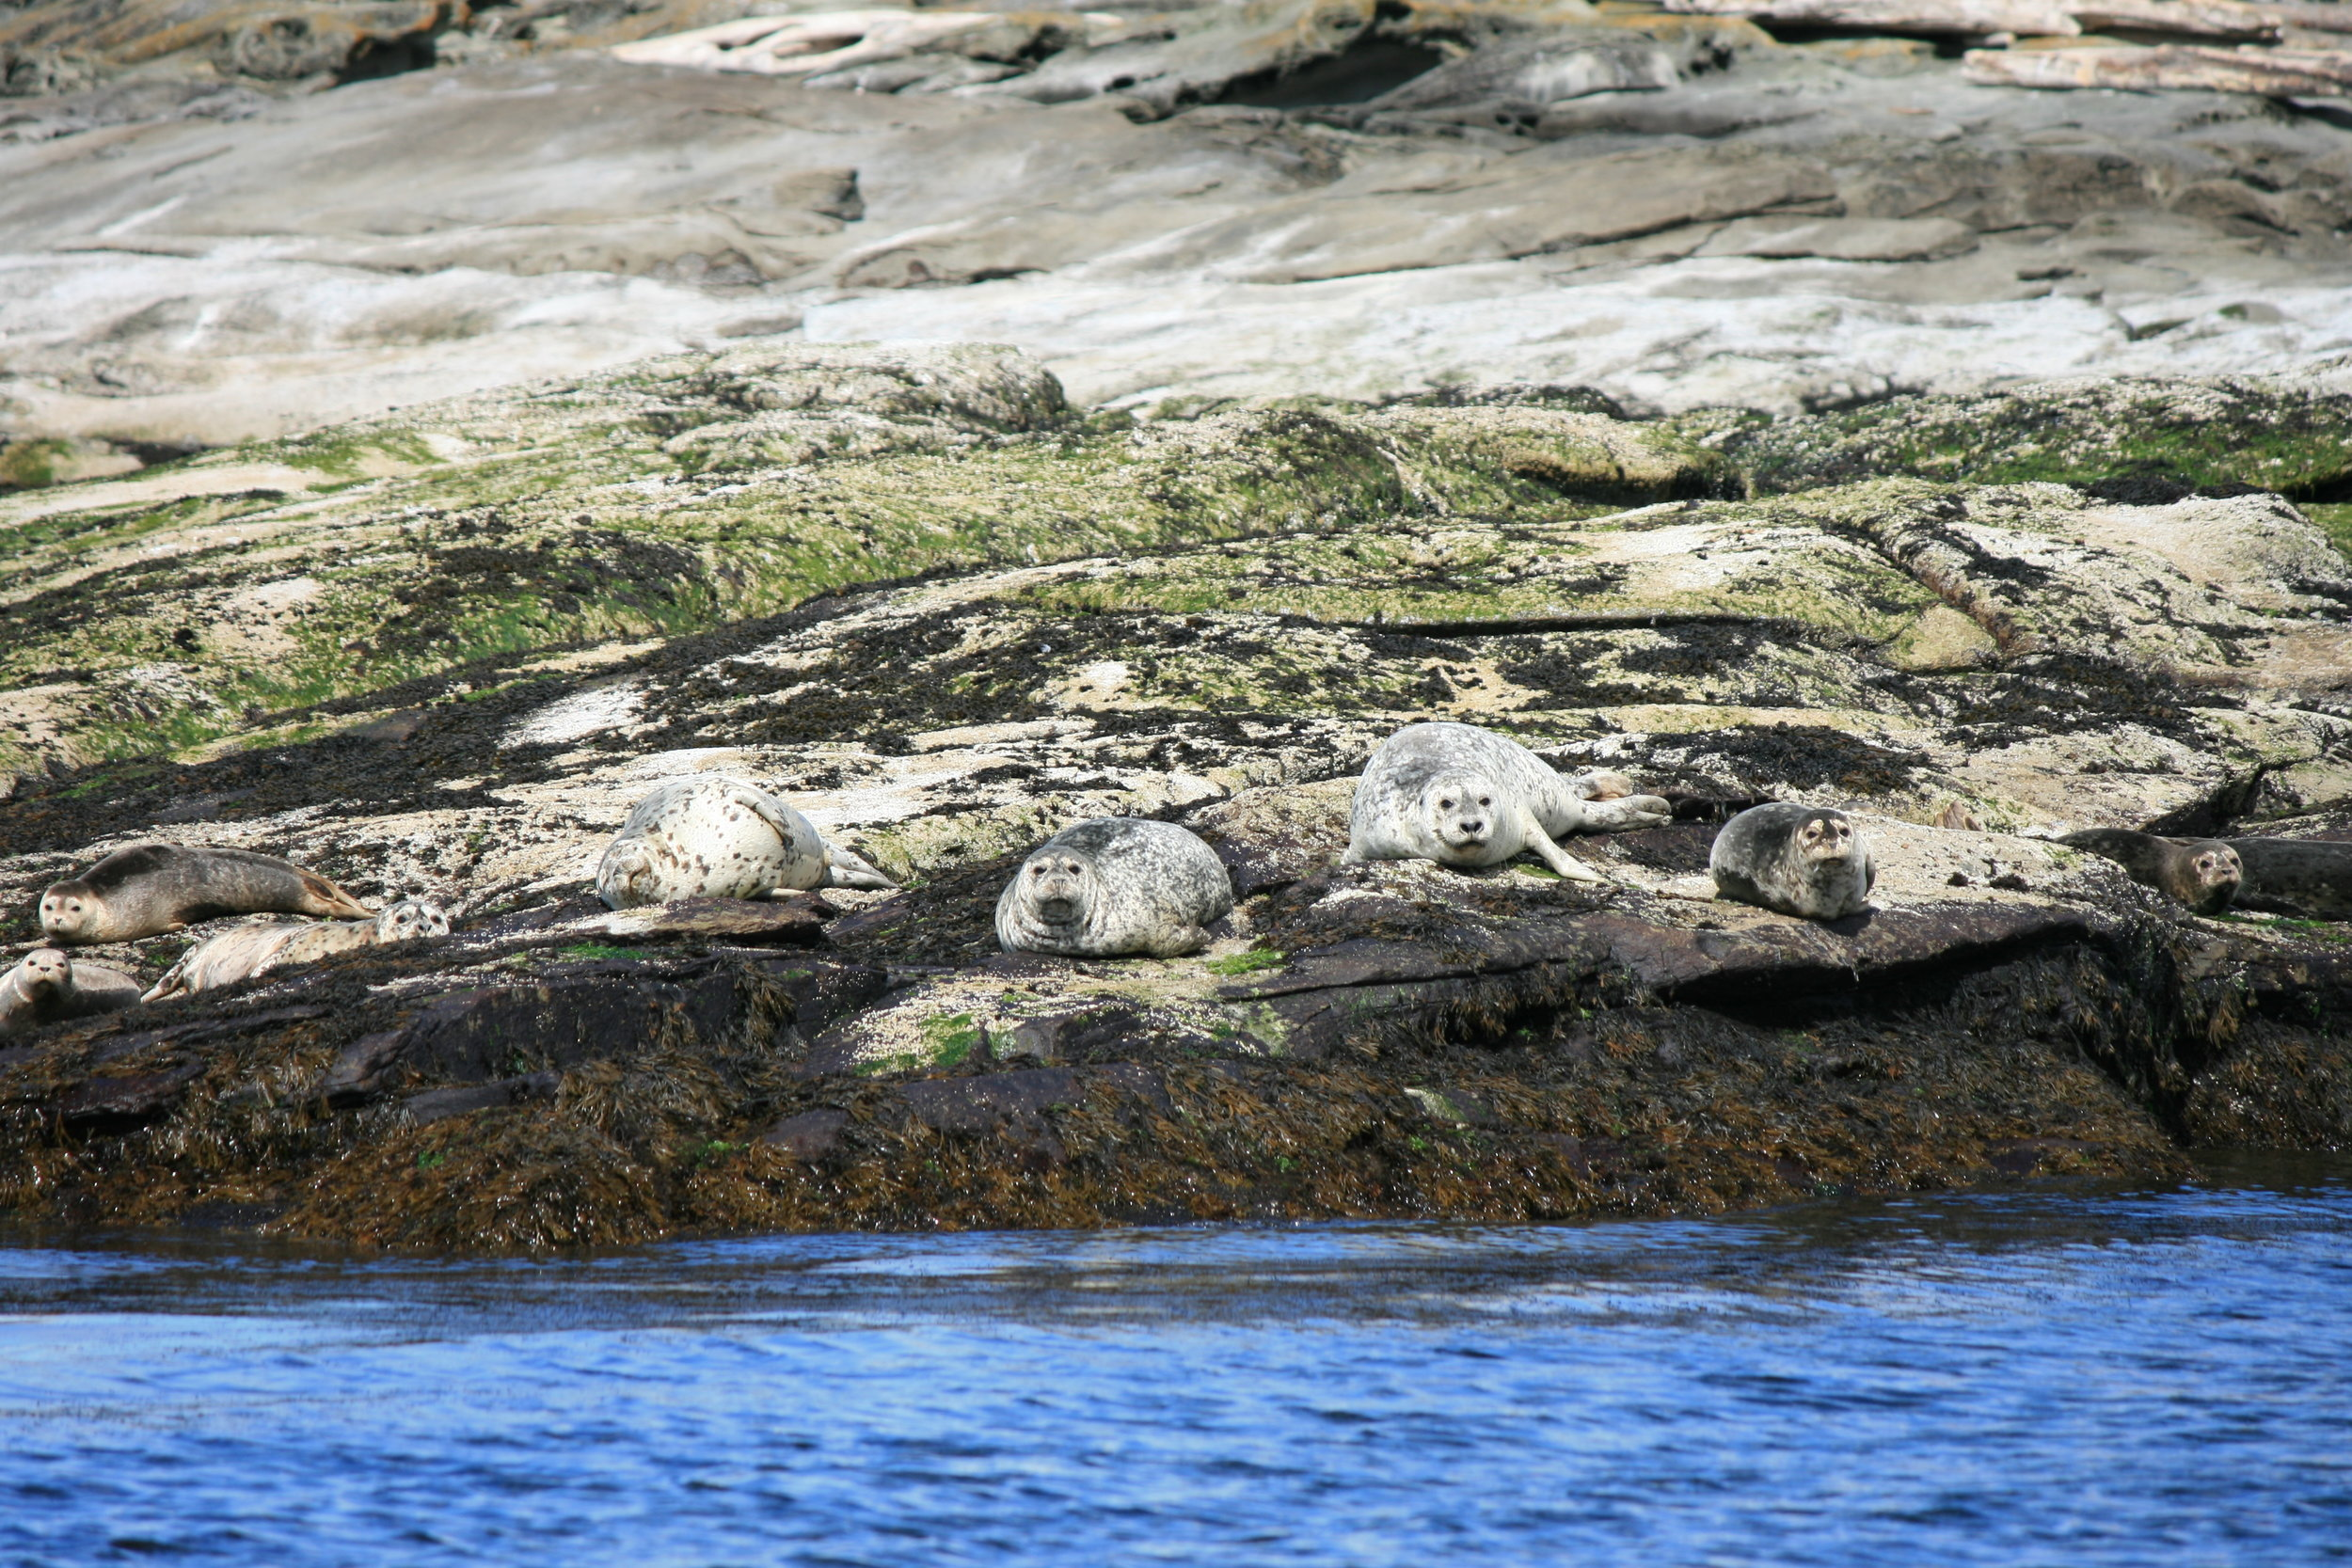 Nine harbour seals hauled out on Entrance Island. They use their colouration to blend into their environment. Photo by James Clyburn.